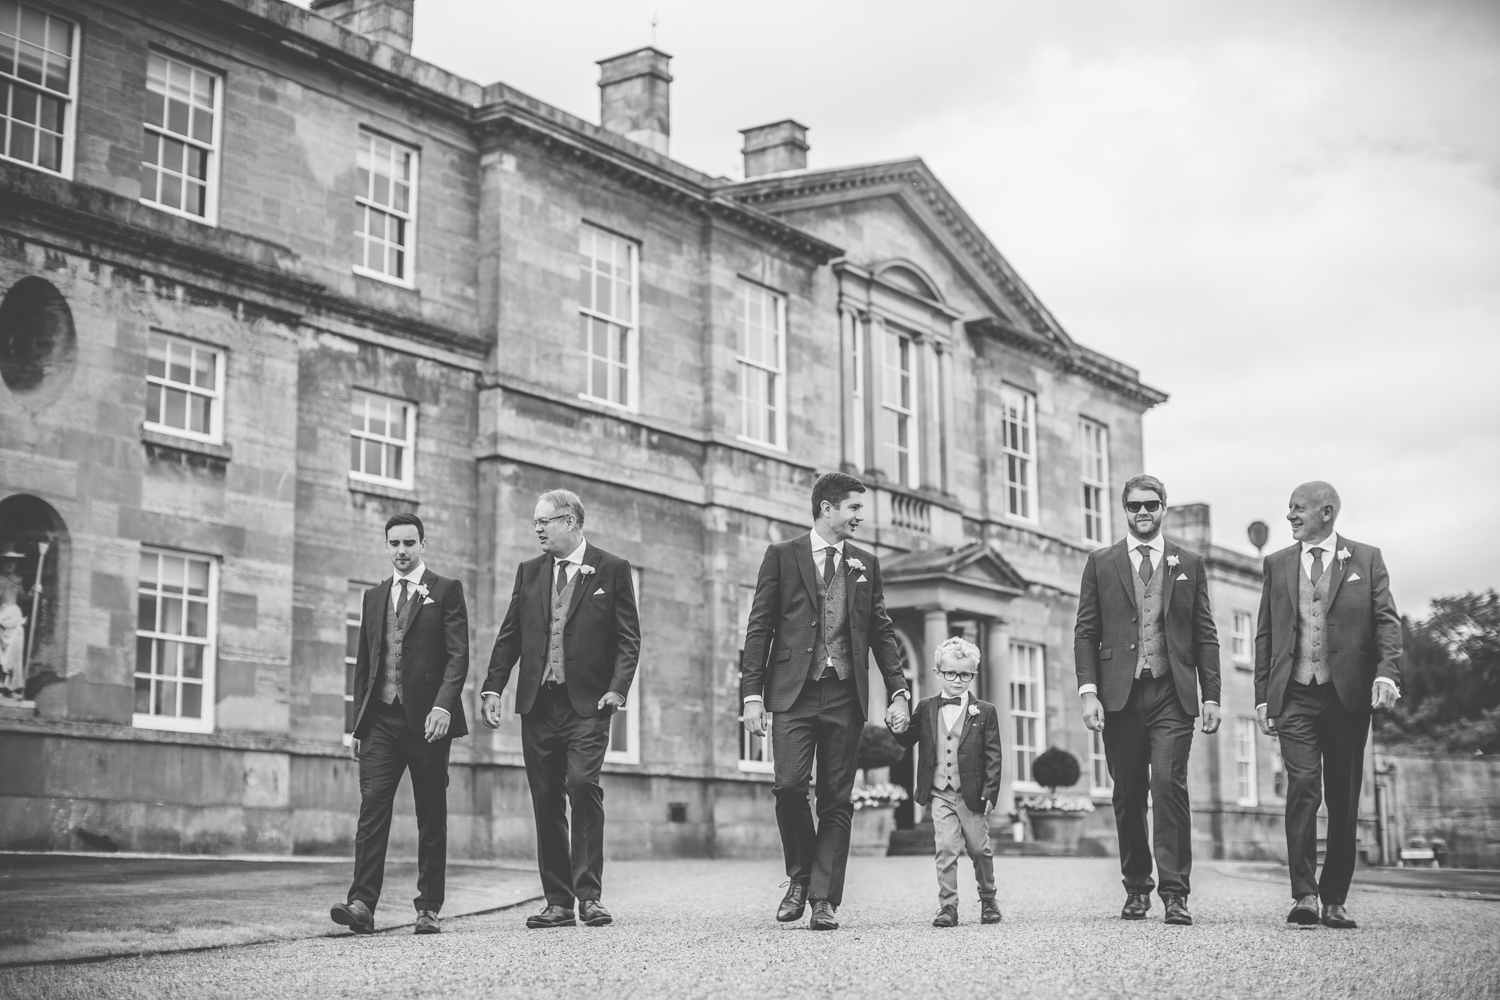 bowcliffe hall, wetherby, yorkshire wedding photography9.jpg